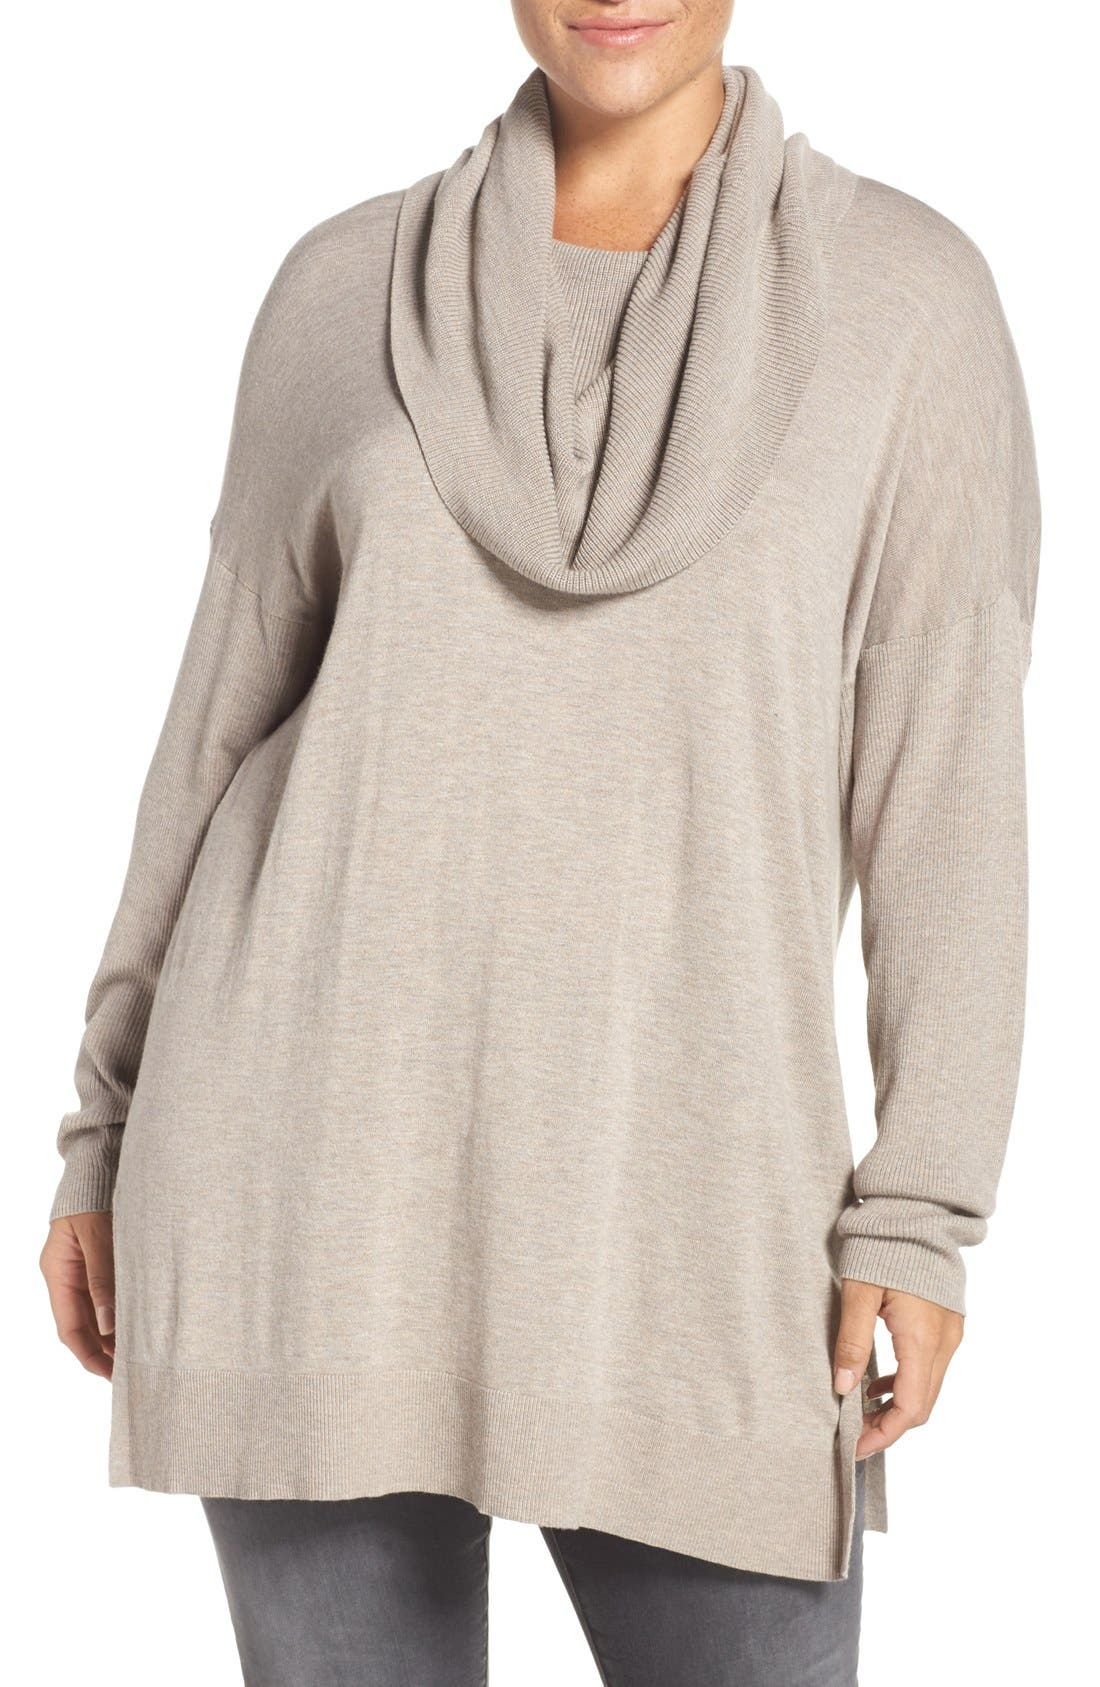 Alternate Image 1 Selected - Caslon® Cowl Neck Tunic Sweater (Plus Size)